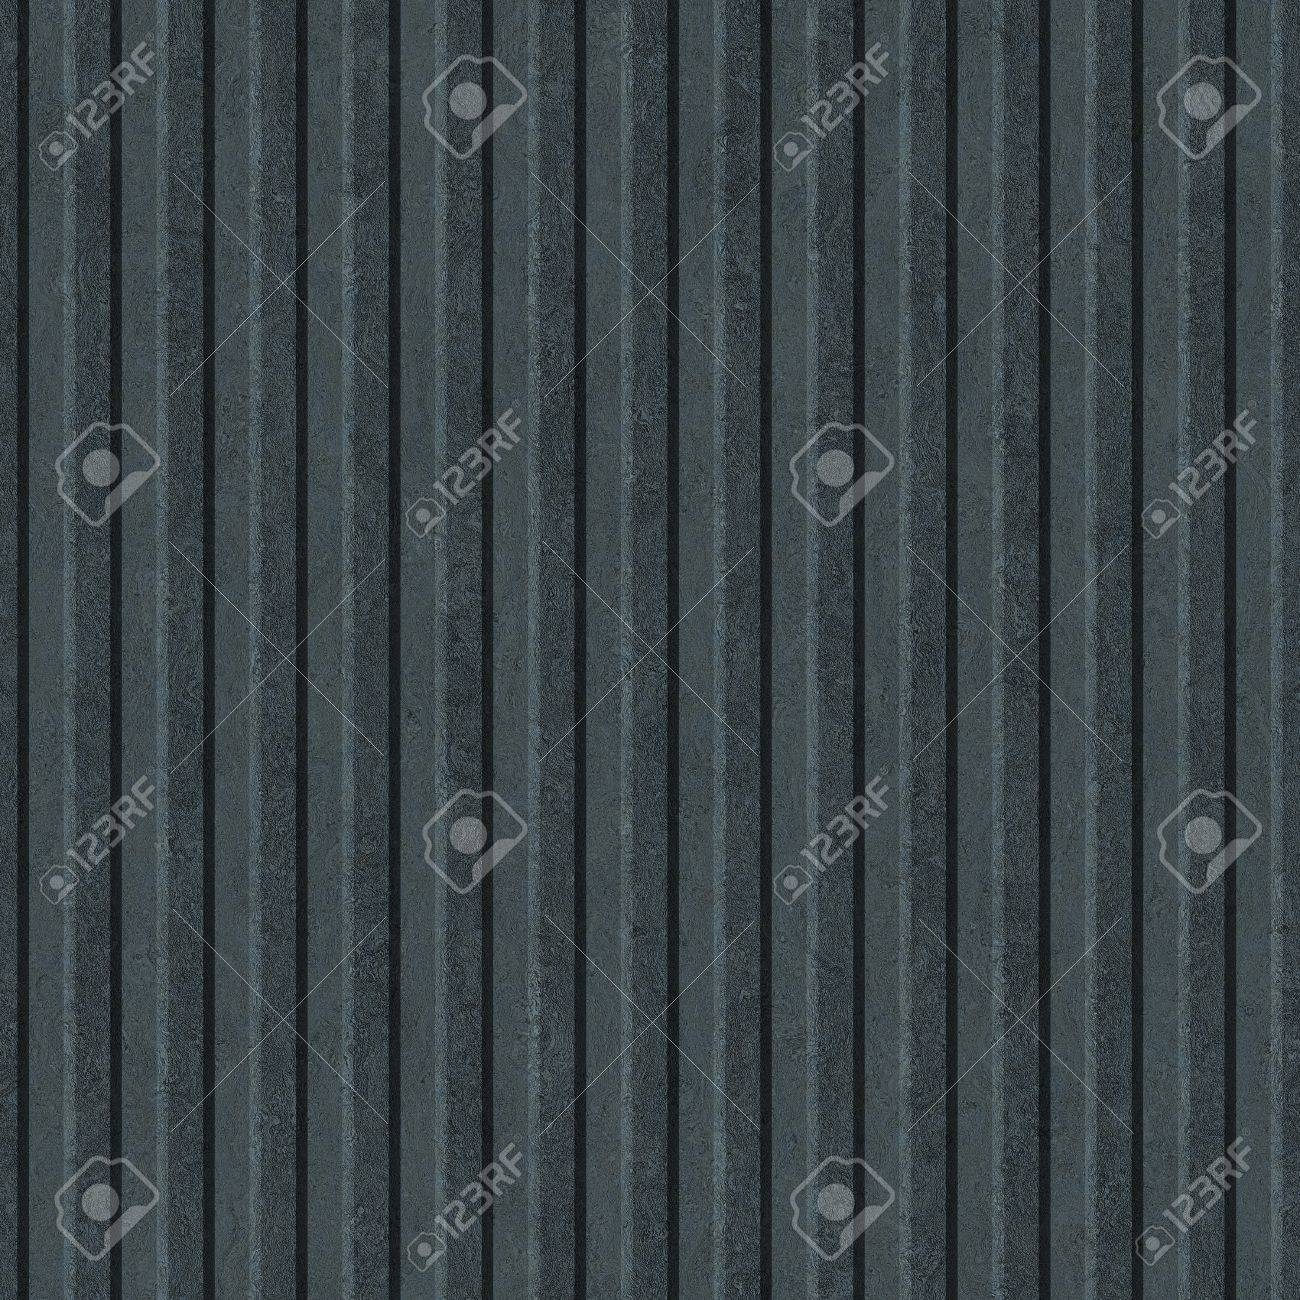 Corrugated metal  Seamless texture  Stock Photo   15768652. Corrugated Metal  Seamless Texture  Stock Photo  Picture And